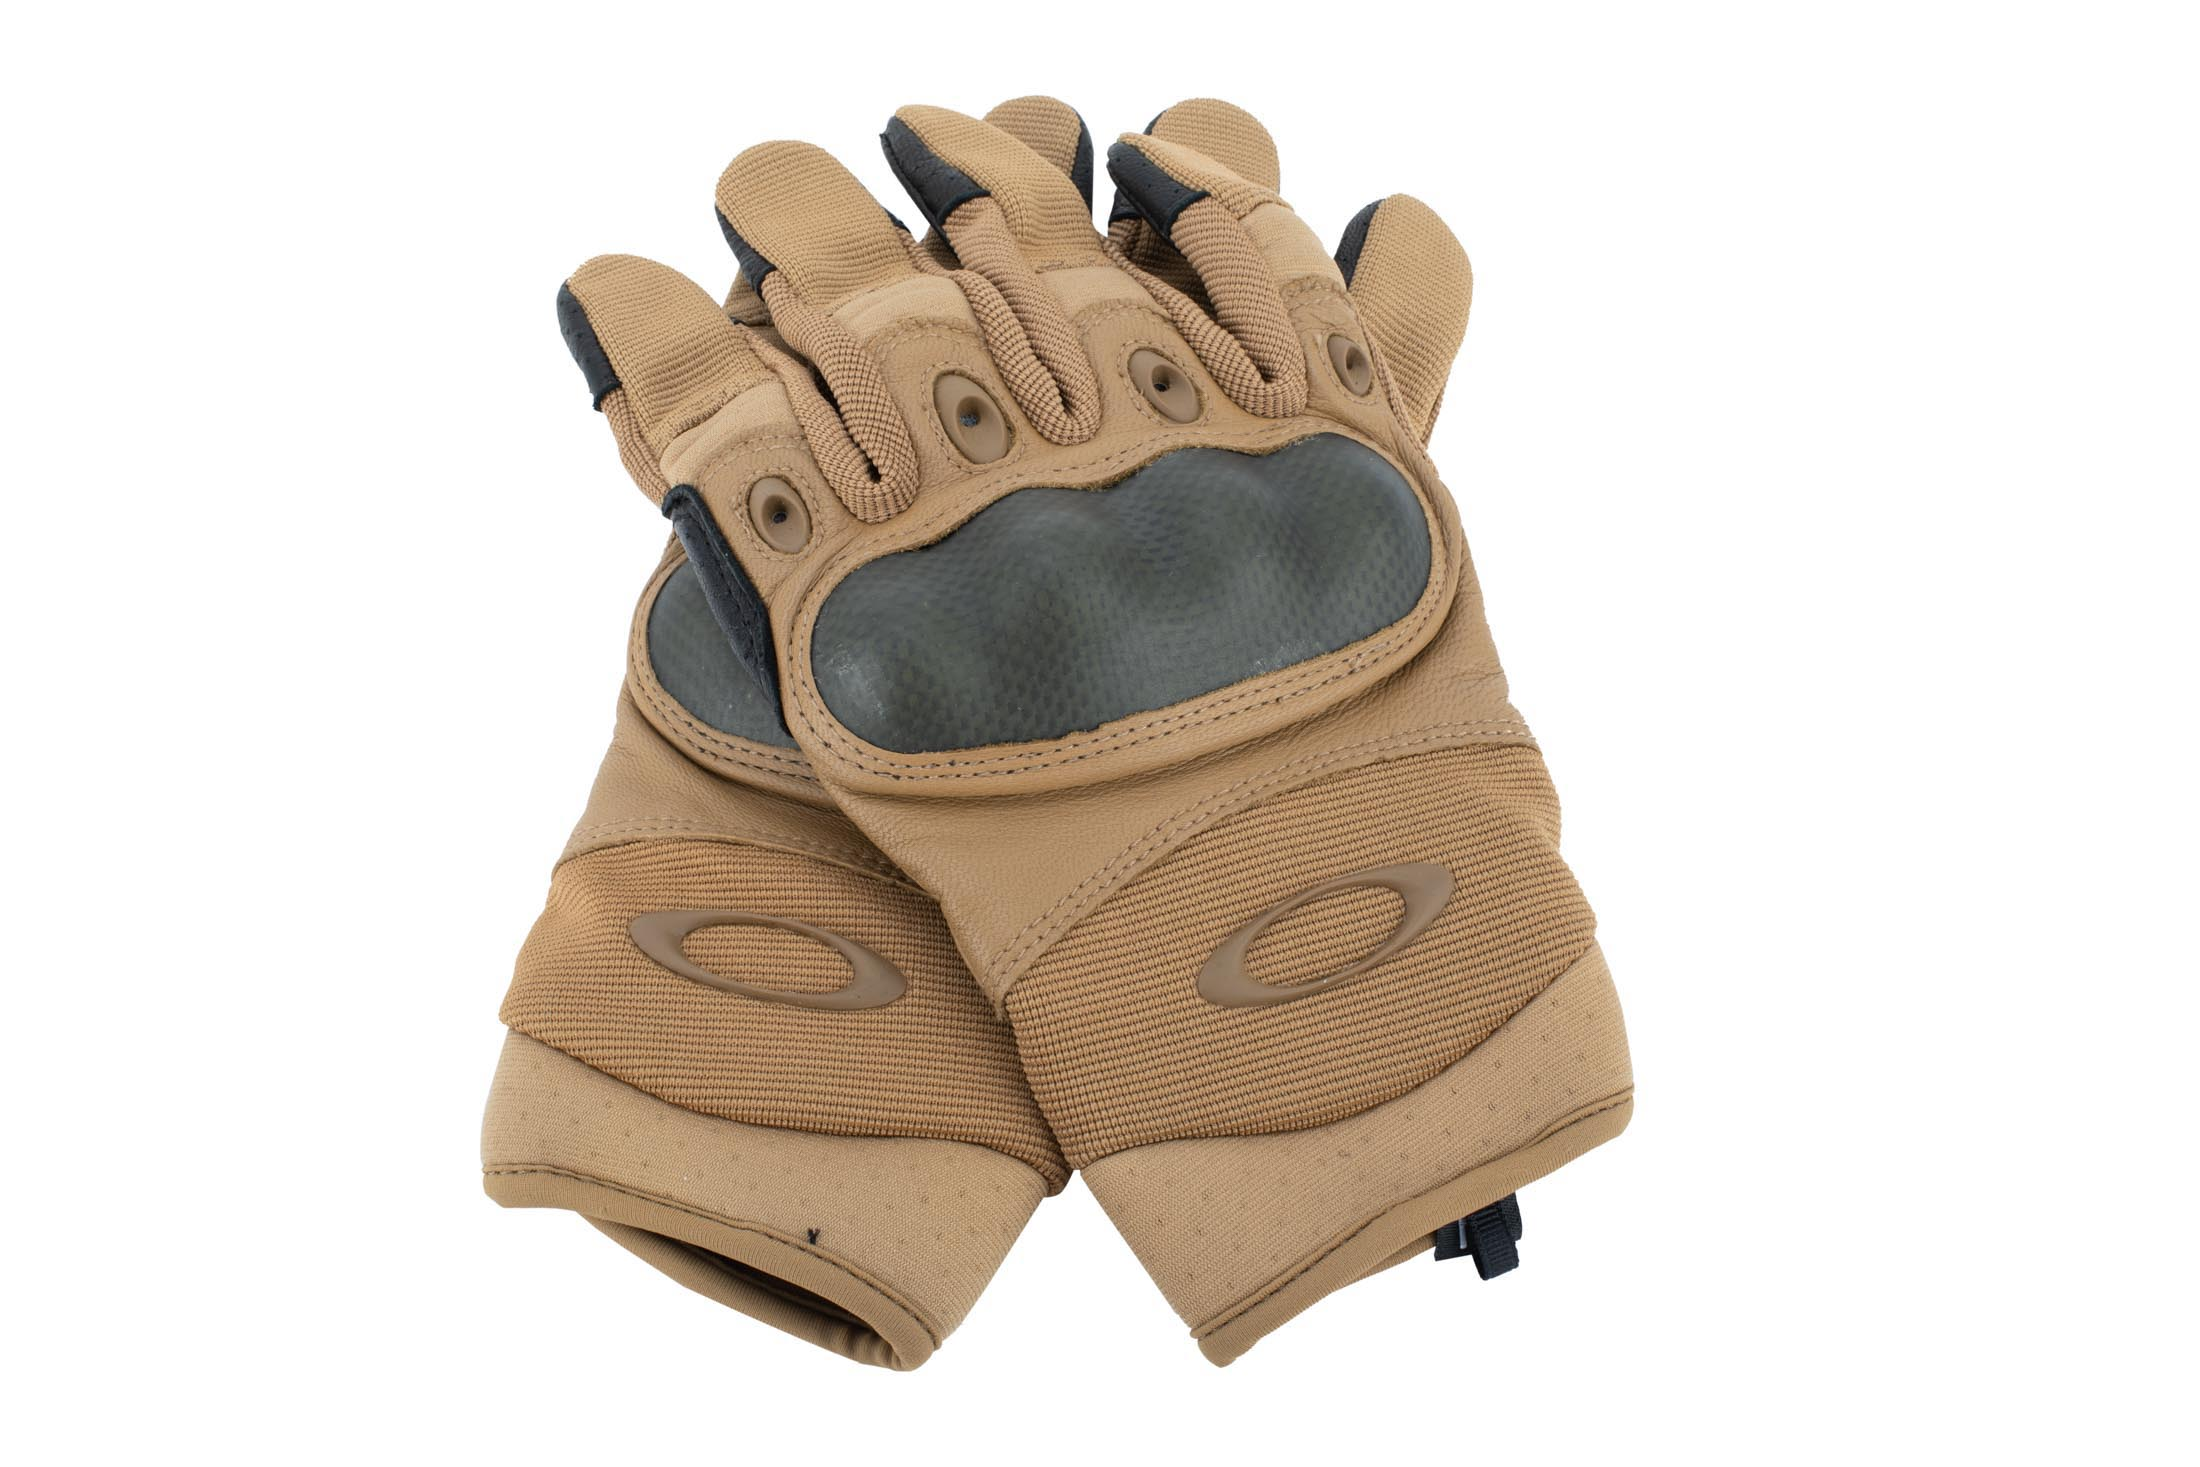 Shop All In Stock Gloves